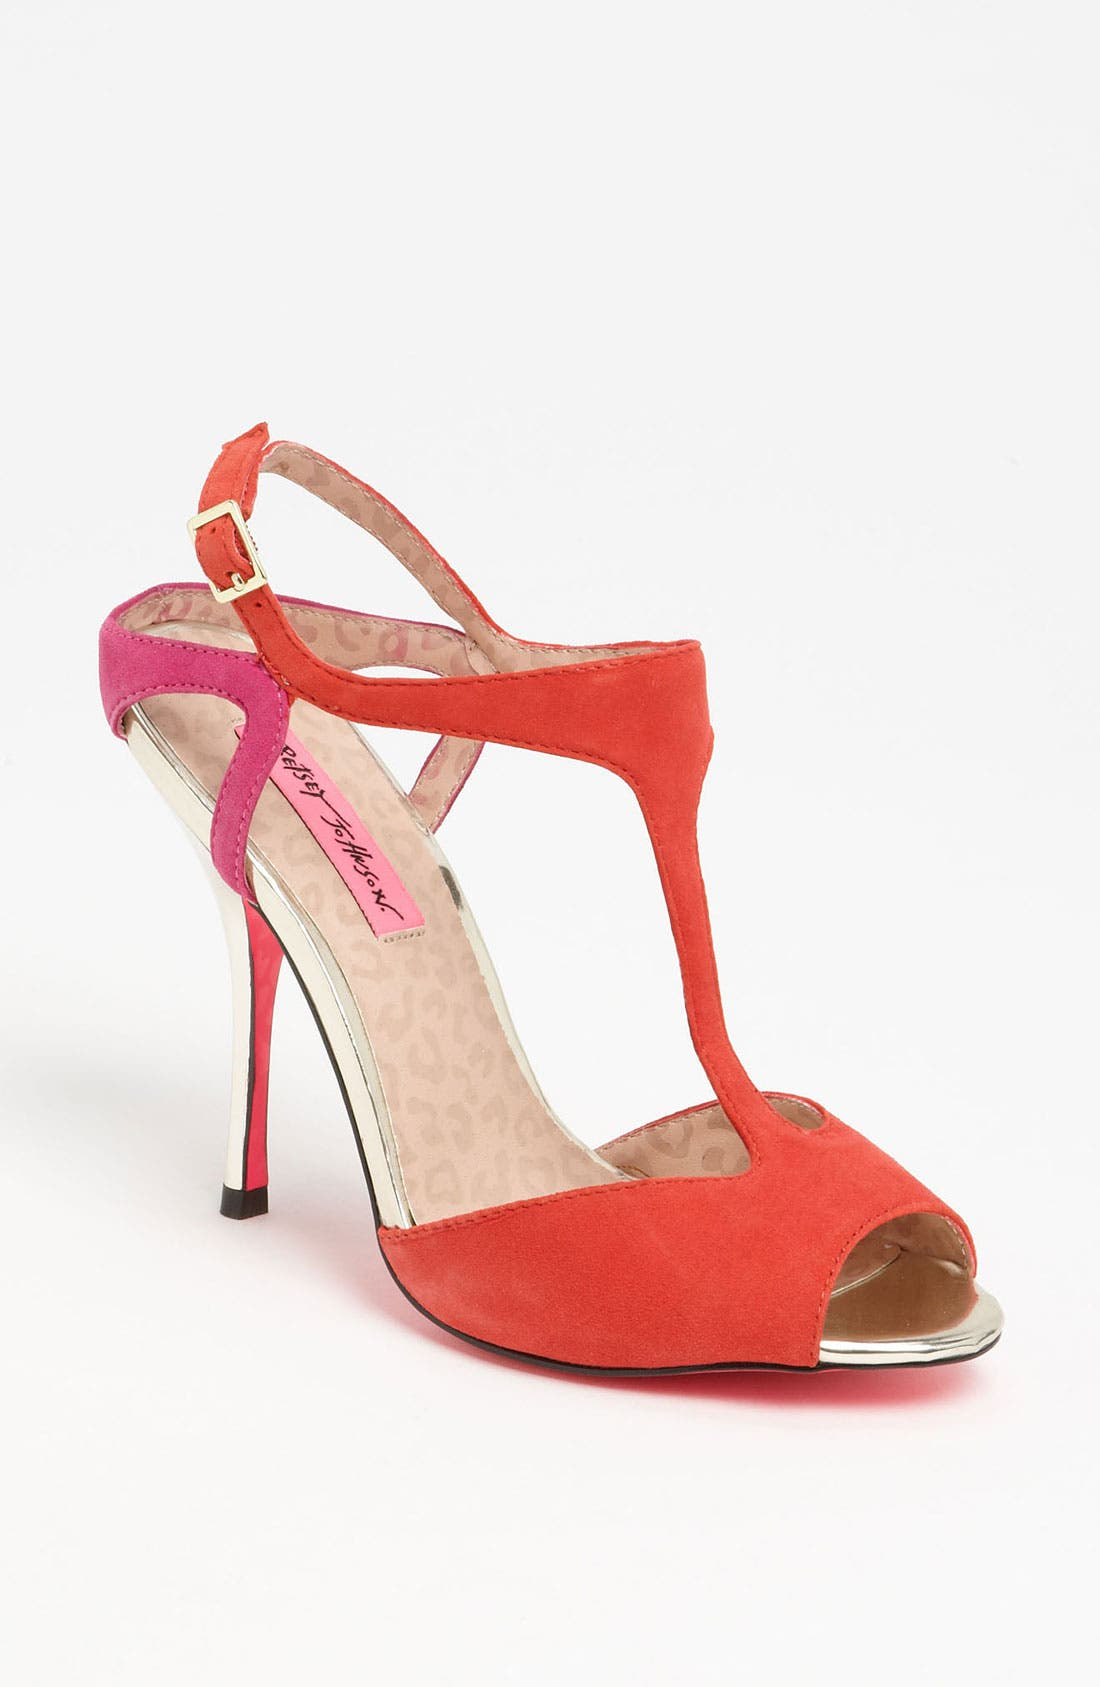 Alternate Image 1 Selected - Betsey Johnson 'Blonddee' Sandal